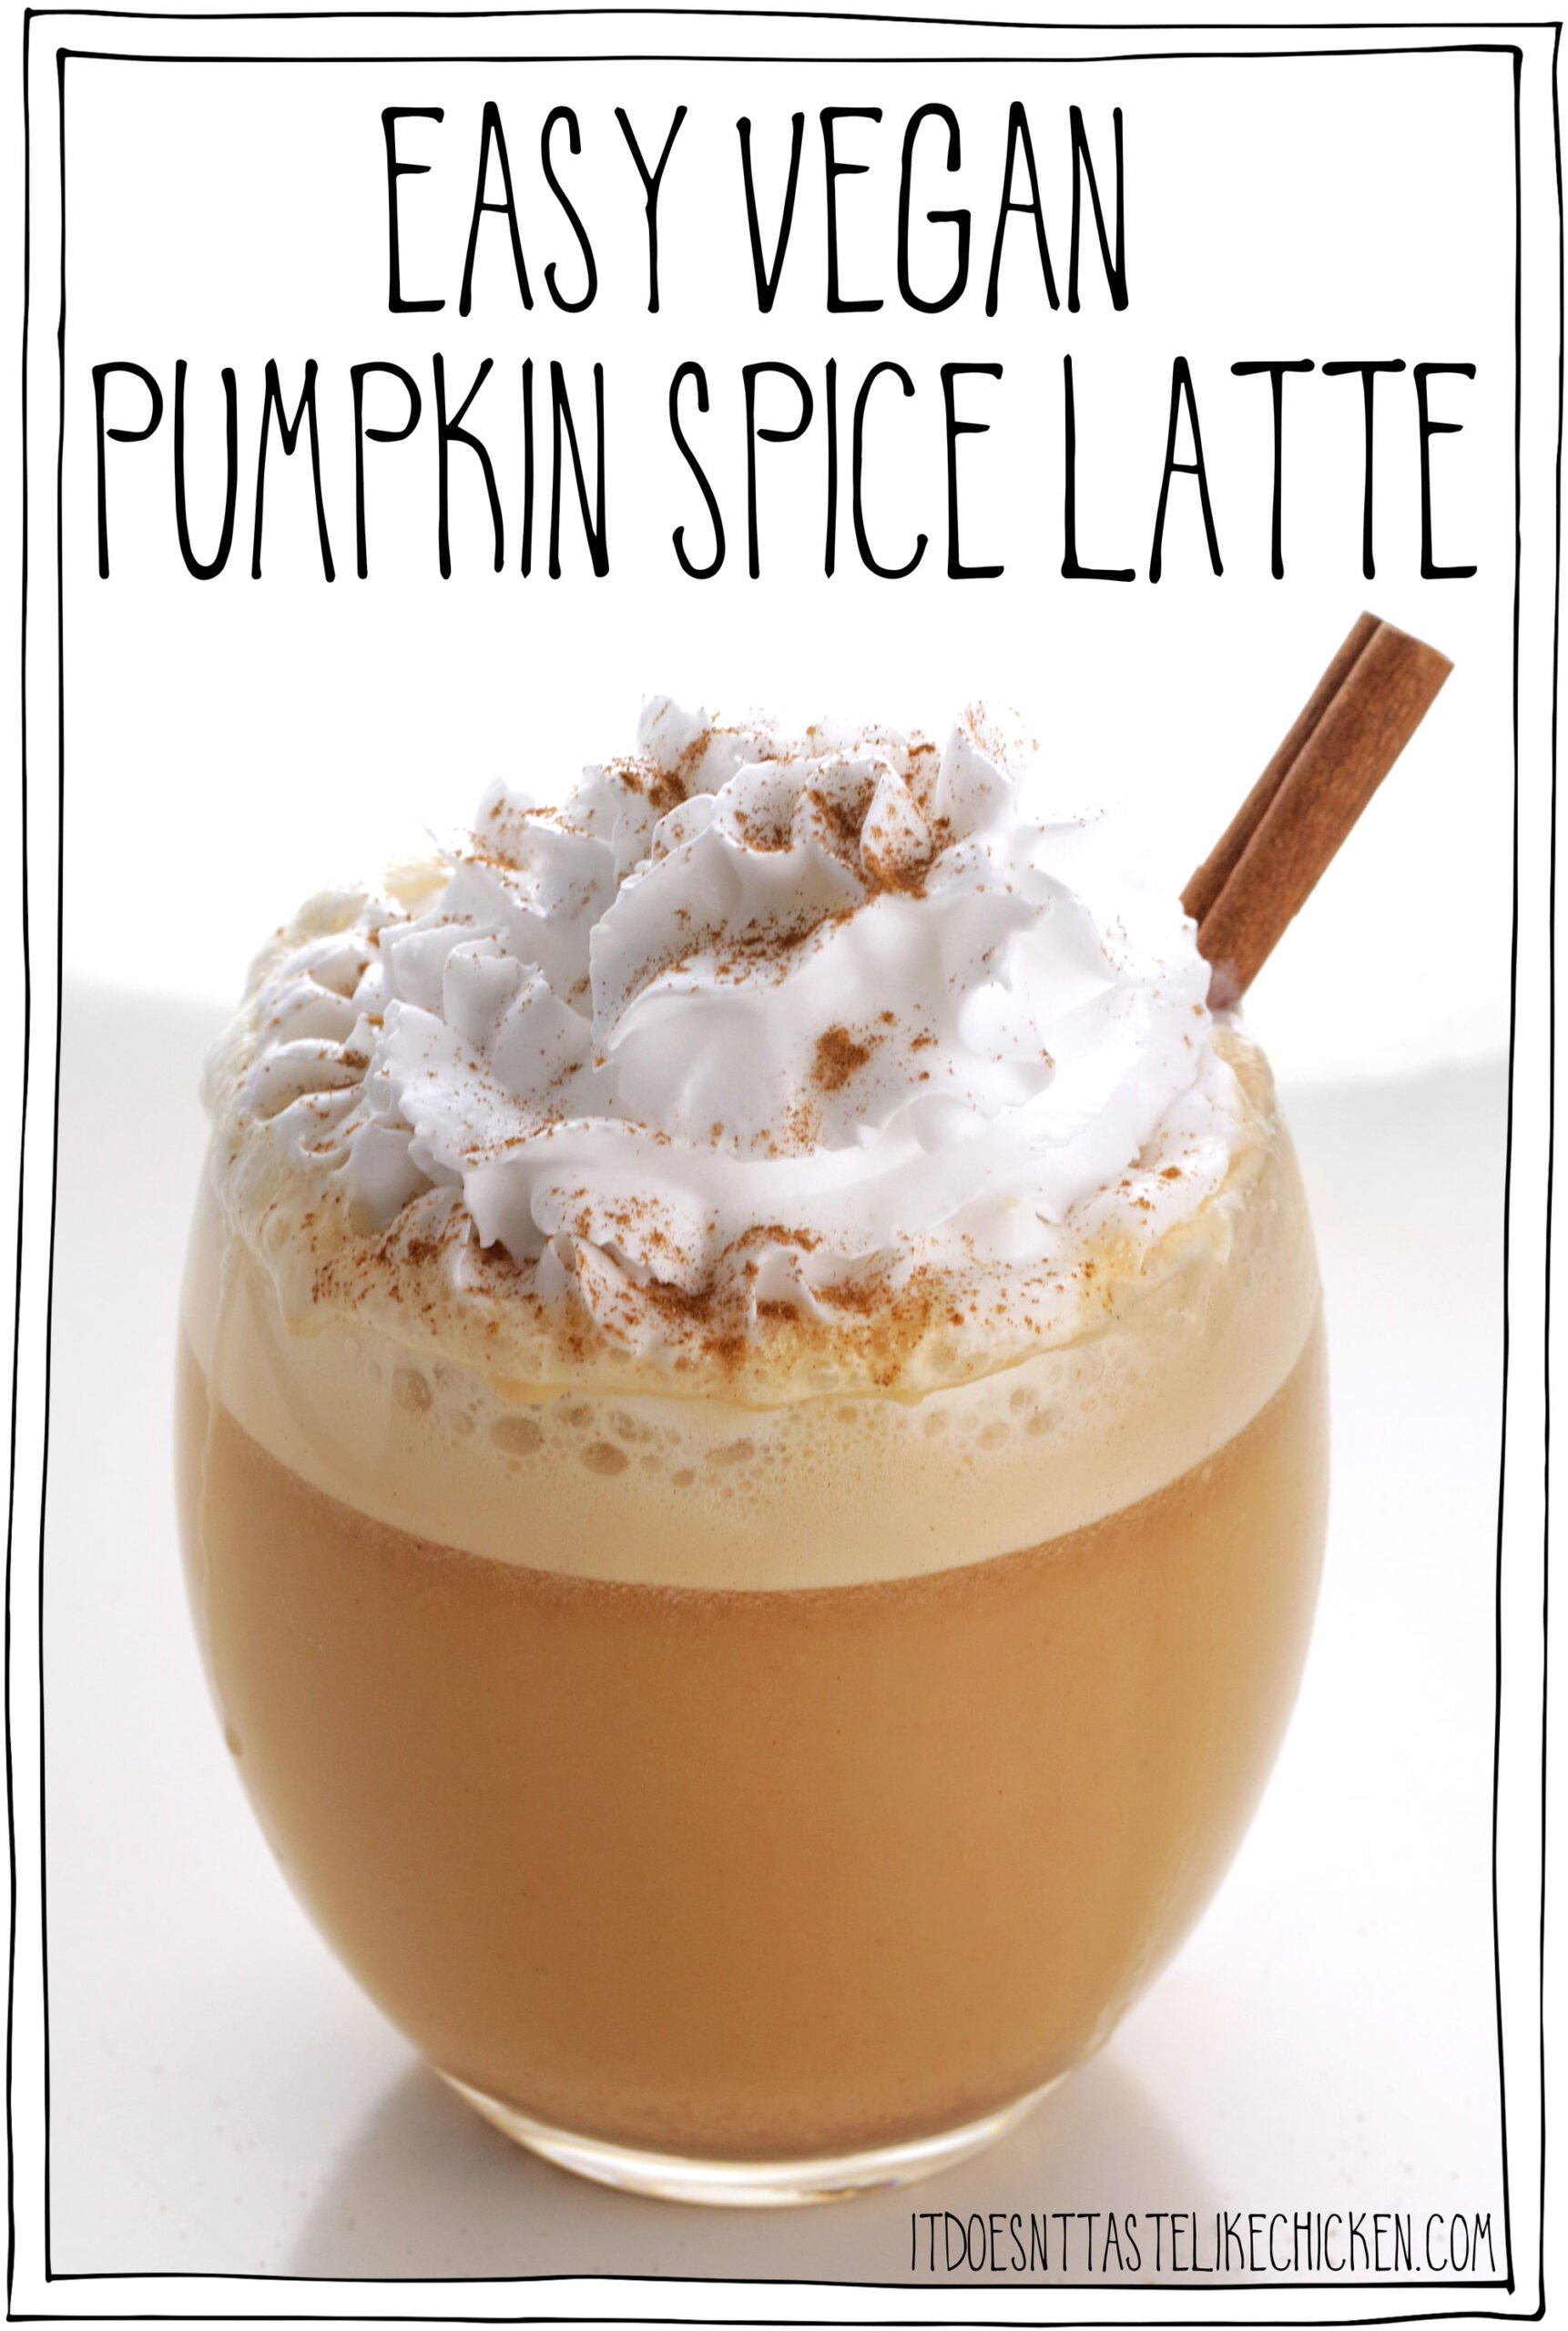 Easy Vegan Pumpkin Spice Latte! Creamy, sweet, with warming cinnamon and nutmeg, and a slight taste of pumpkin. It tastes like pumpkin pie in a cup! Just 6 ingredients (7 if you like coconut whipped cream, which I definitely do), and about 5 minutes to make. This dairy-free version is so quick and easy to whip up and tastes even better than Starbucks. #itdoesnttastelikechicken #veganrecipes #pumpkinspice